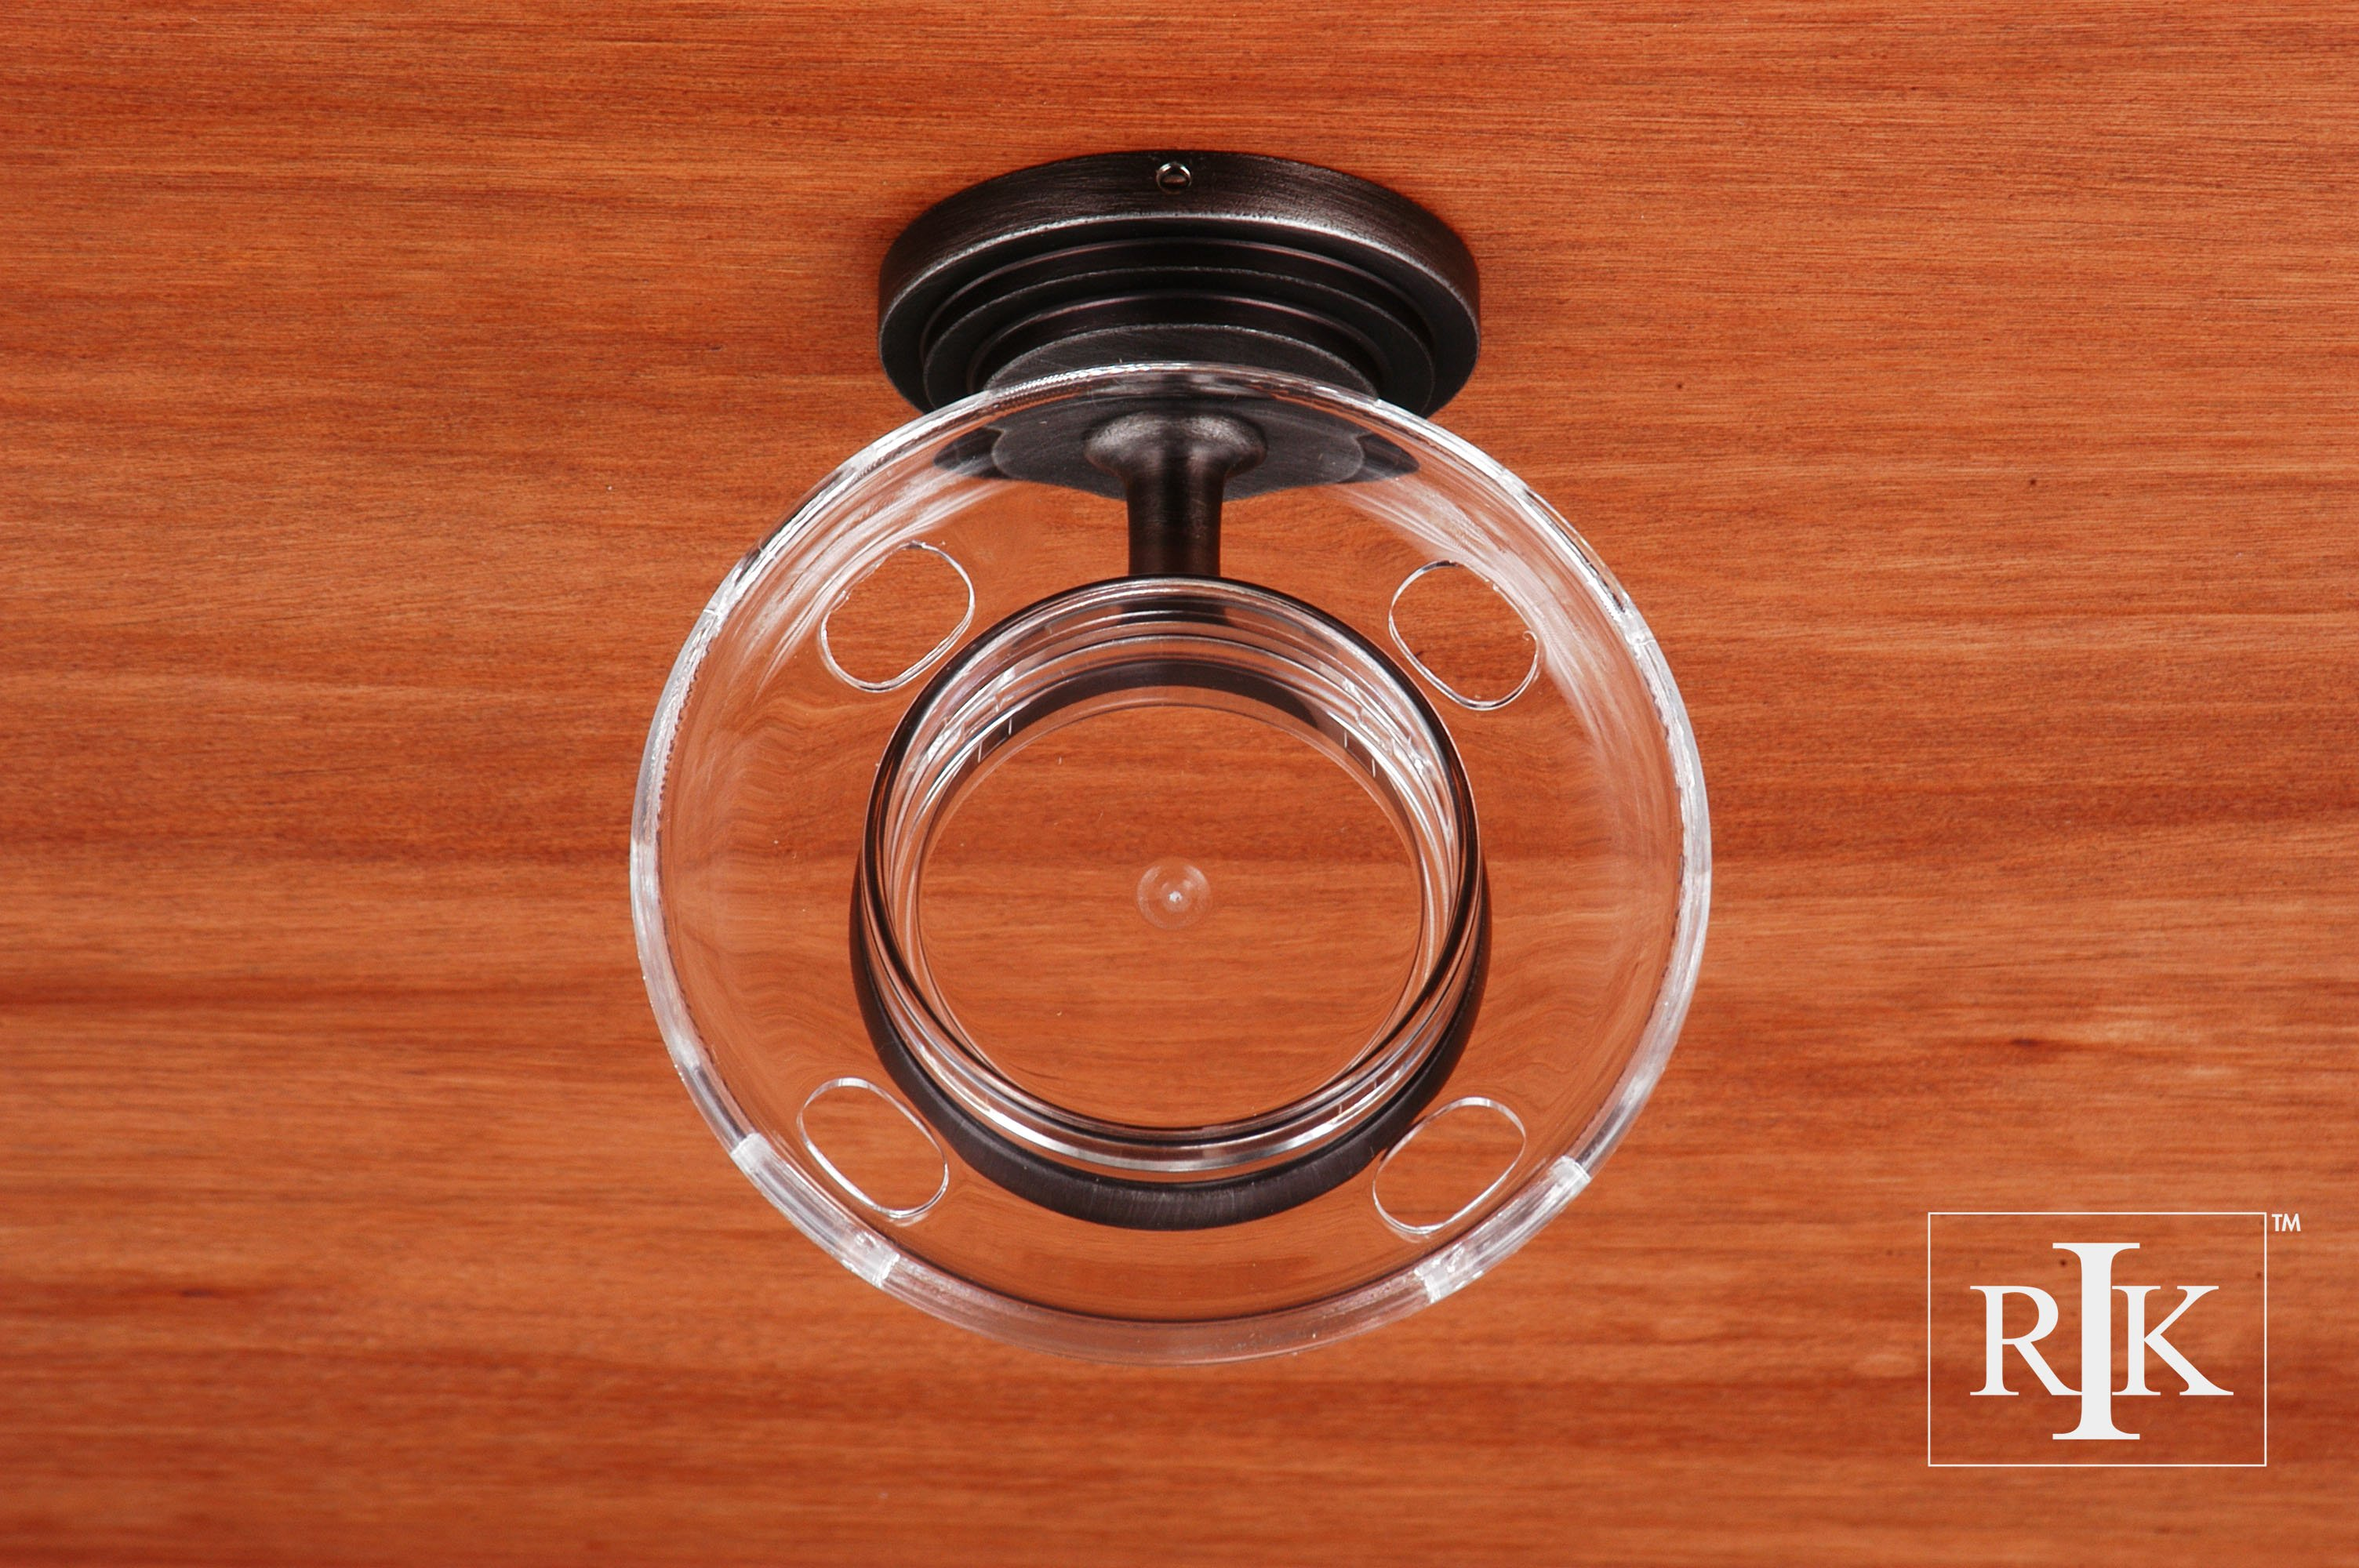 Rk international st7 step up base tumbler holder home by for Decor products international